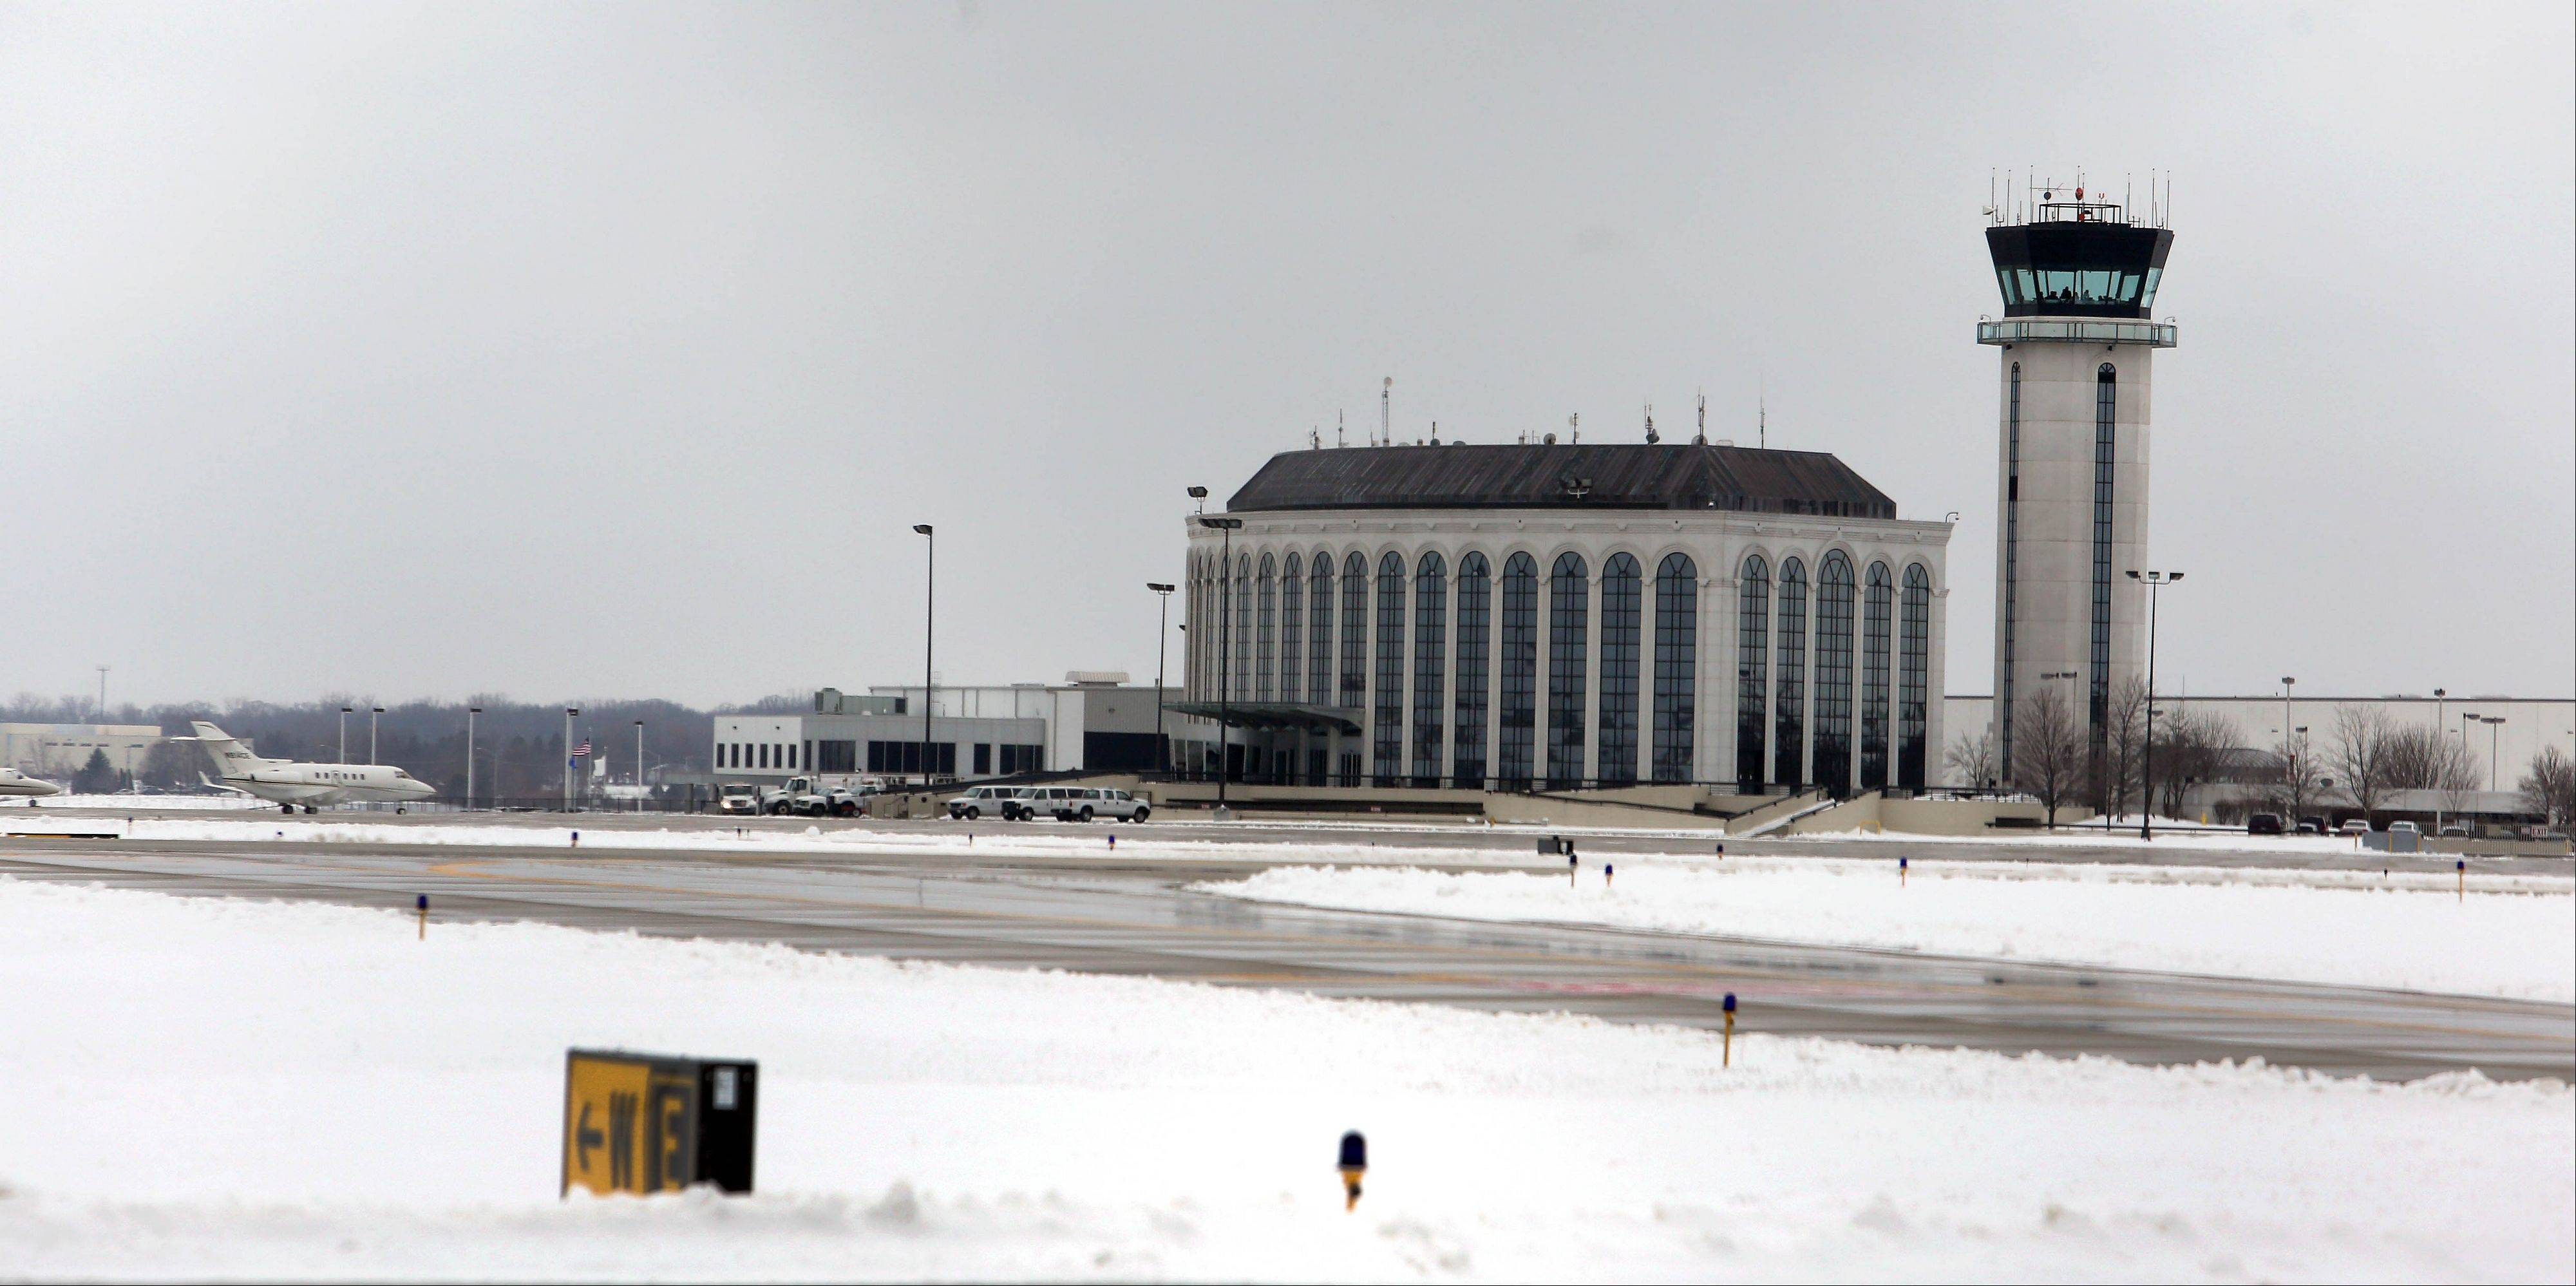 The DuPage County Airport in West Chicago could see its tower closed if cuts triggered by the sequester occur.